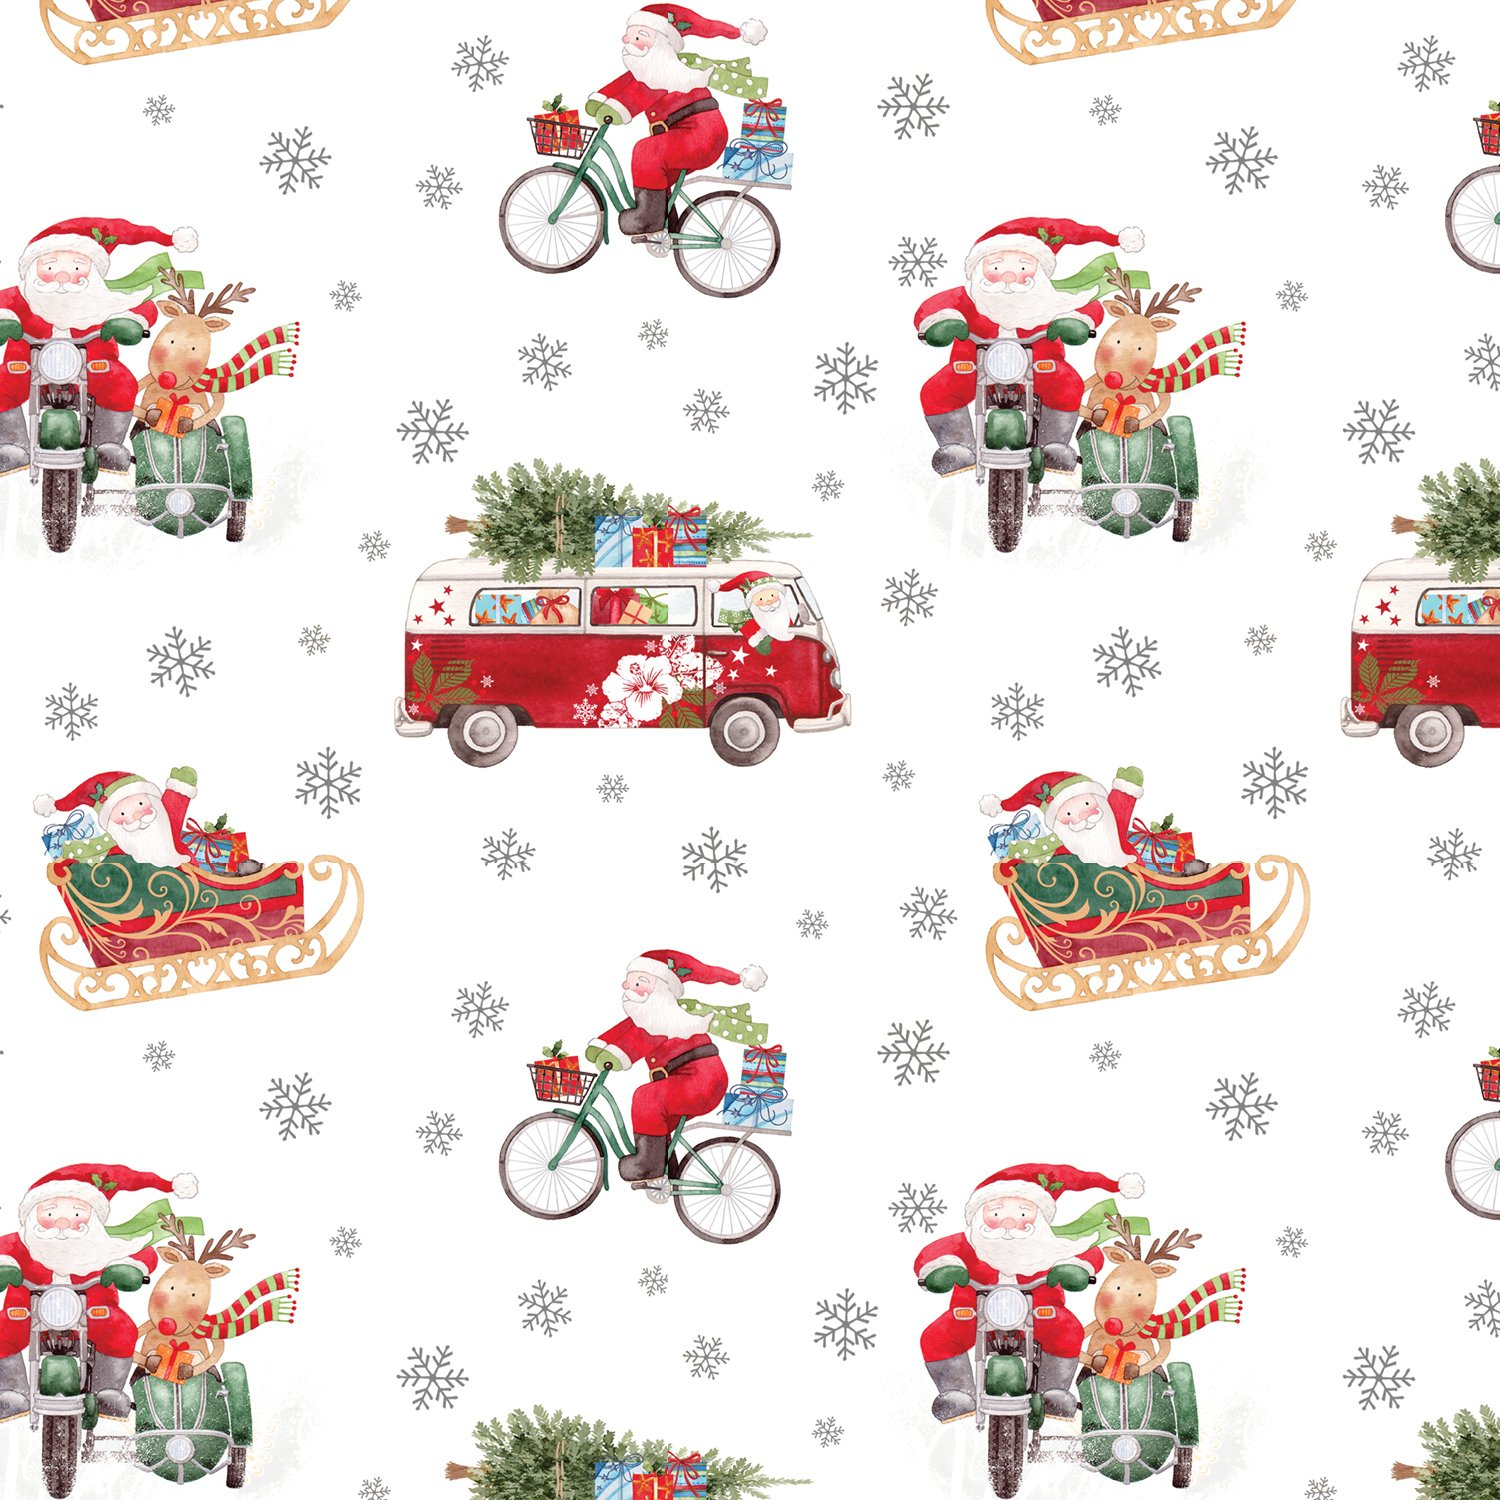 Jillson & Roberts Gift Wrap, Out For Delivery (8 Rolls 5ft x 30in)